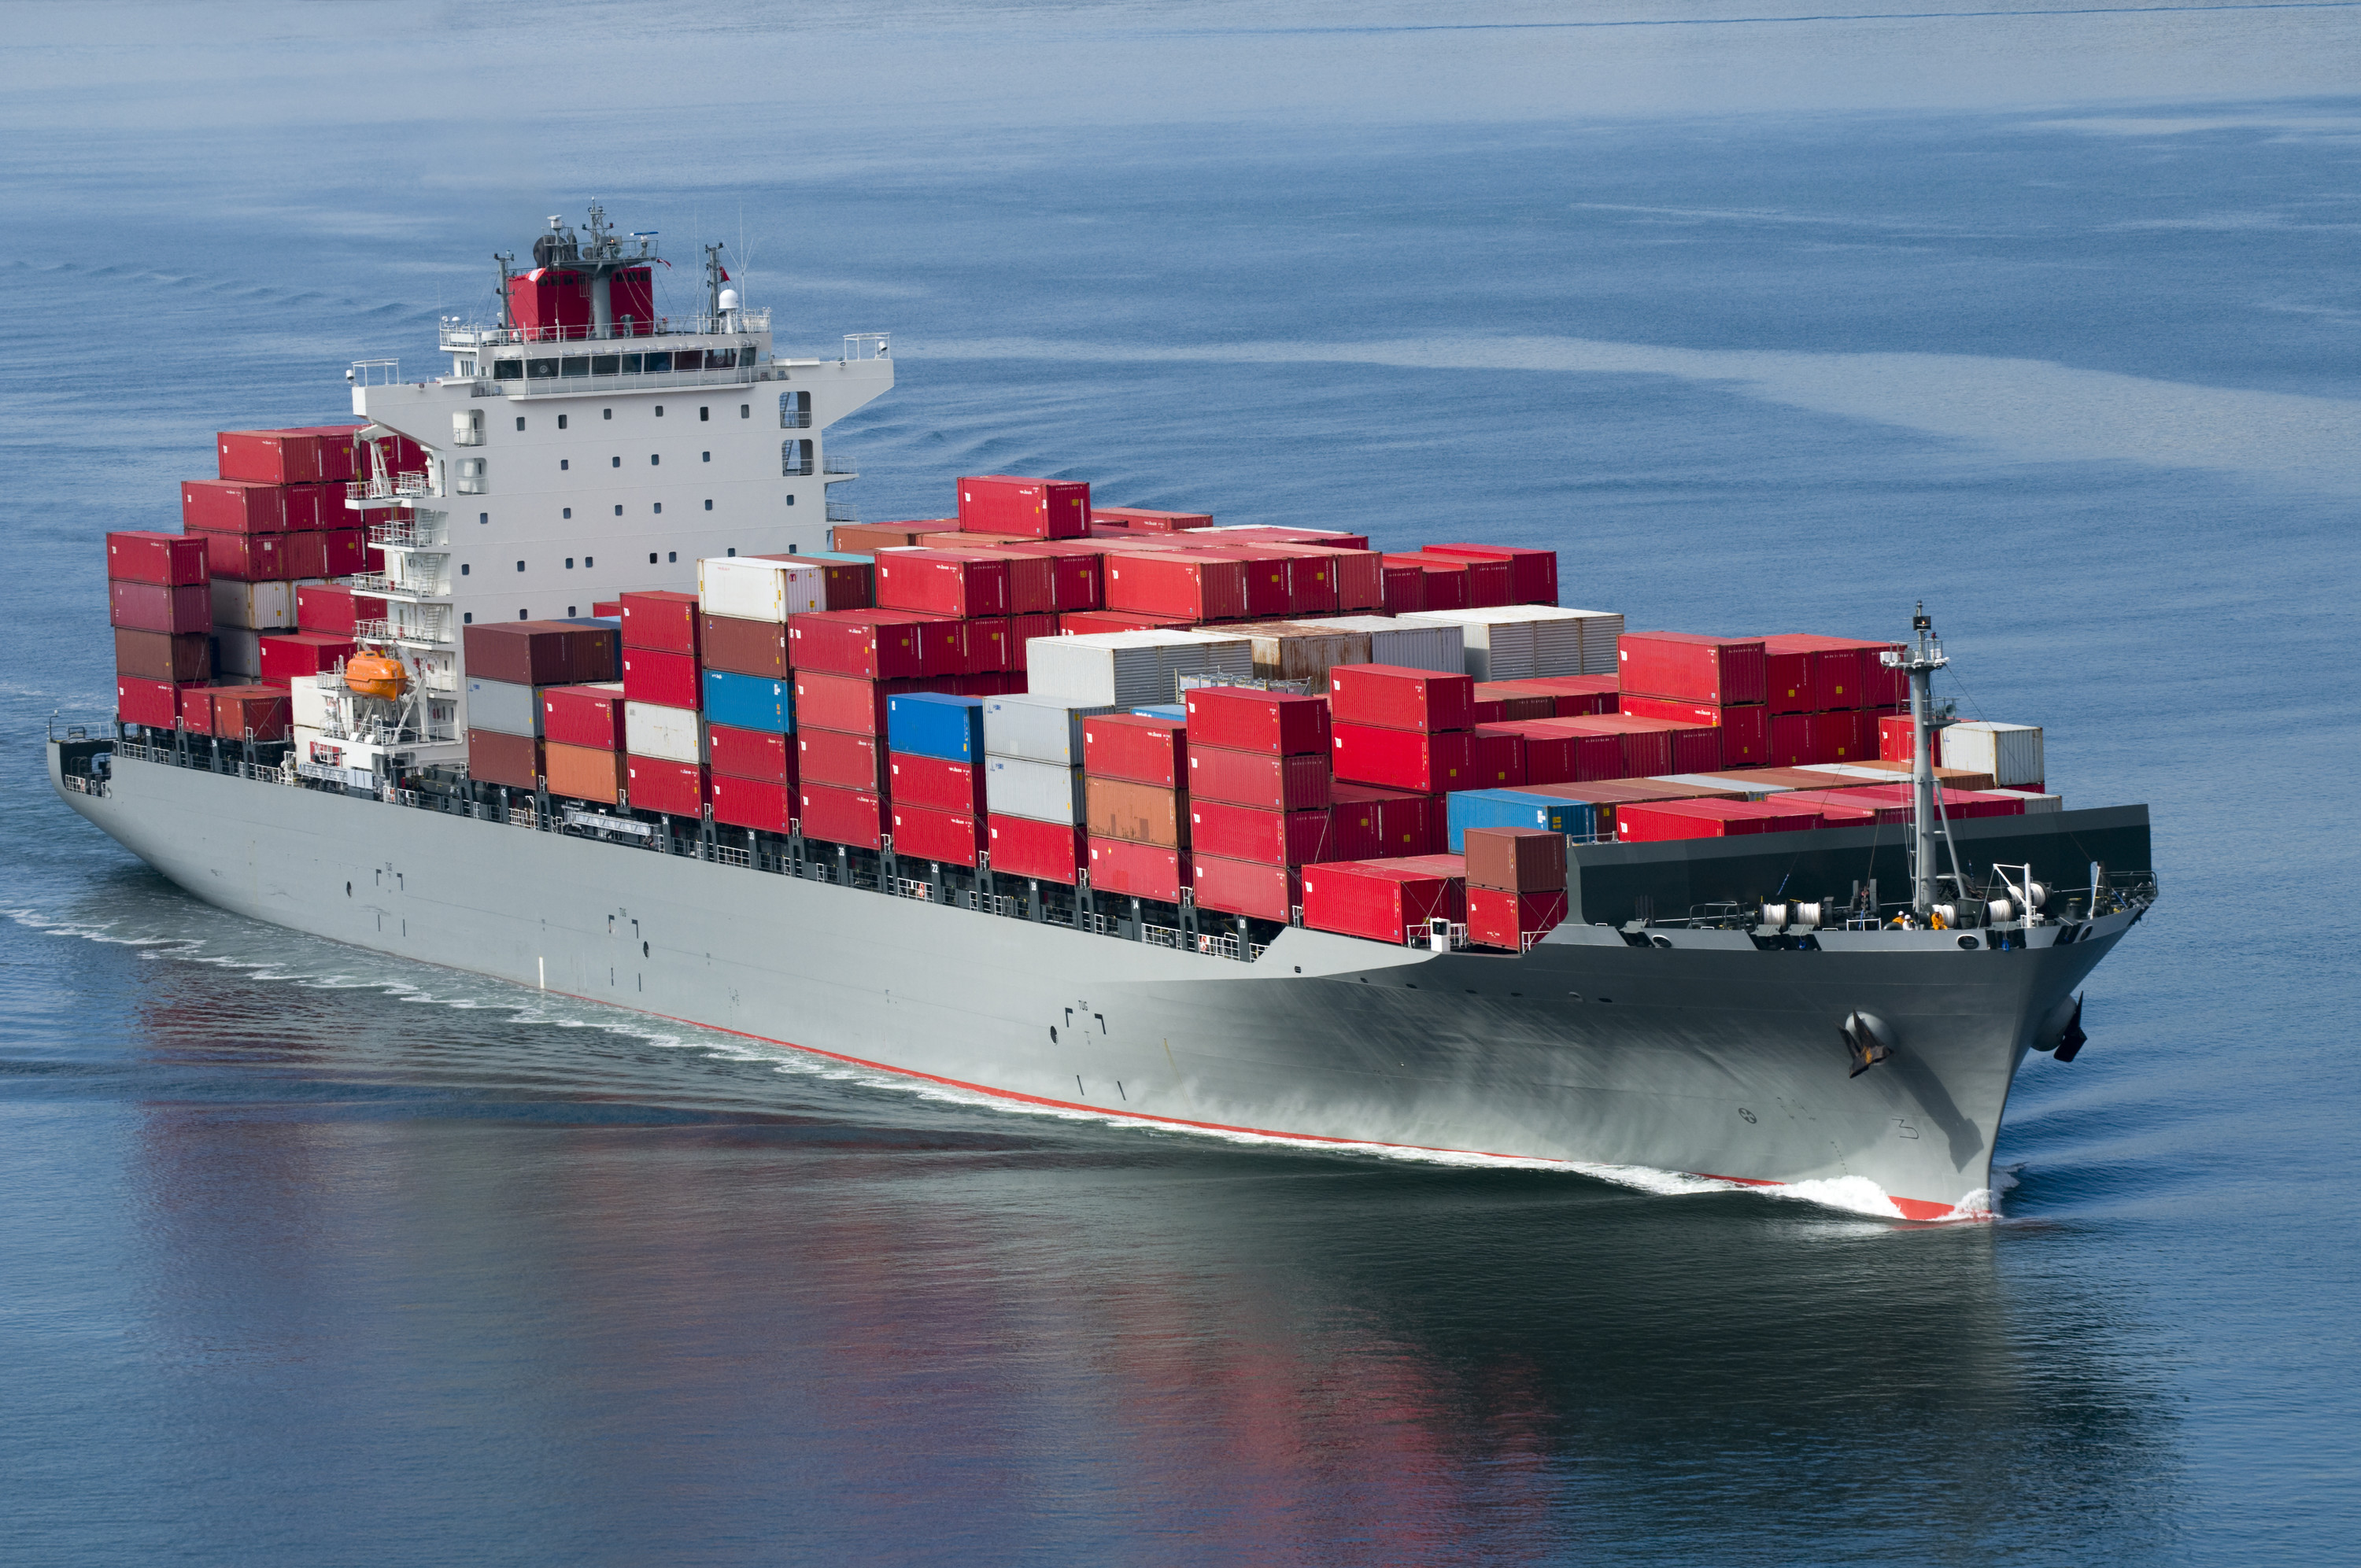 container_shipment_ocean_exports_ocean_world_trade